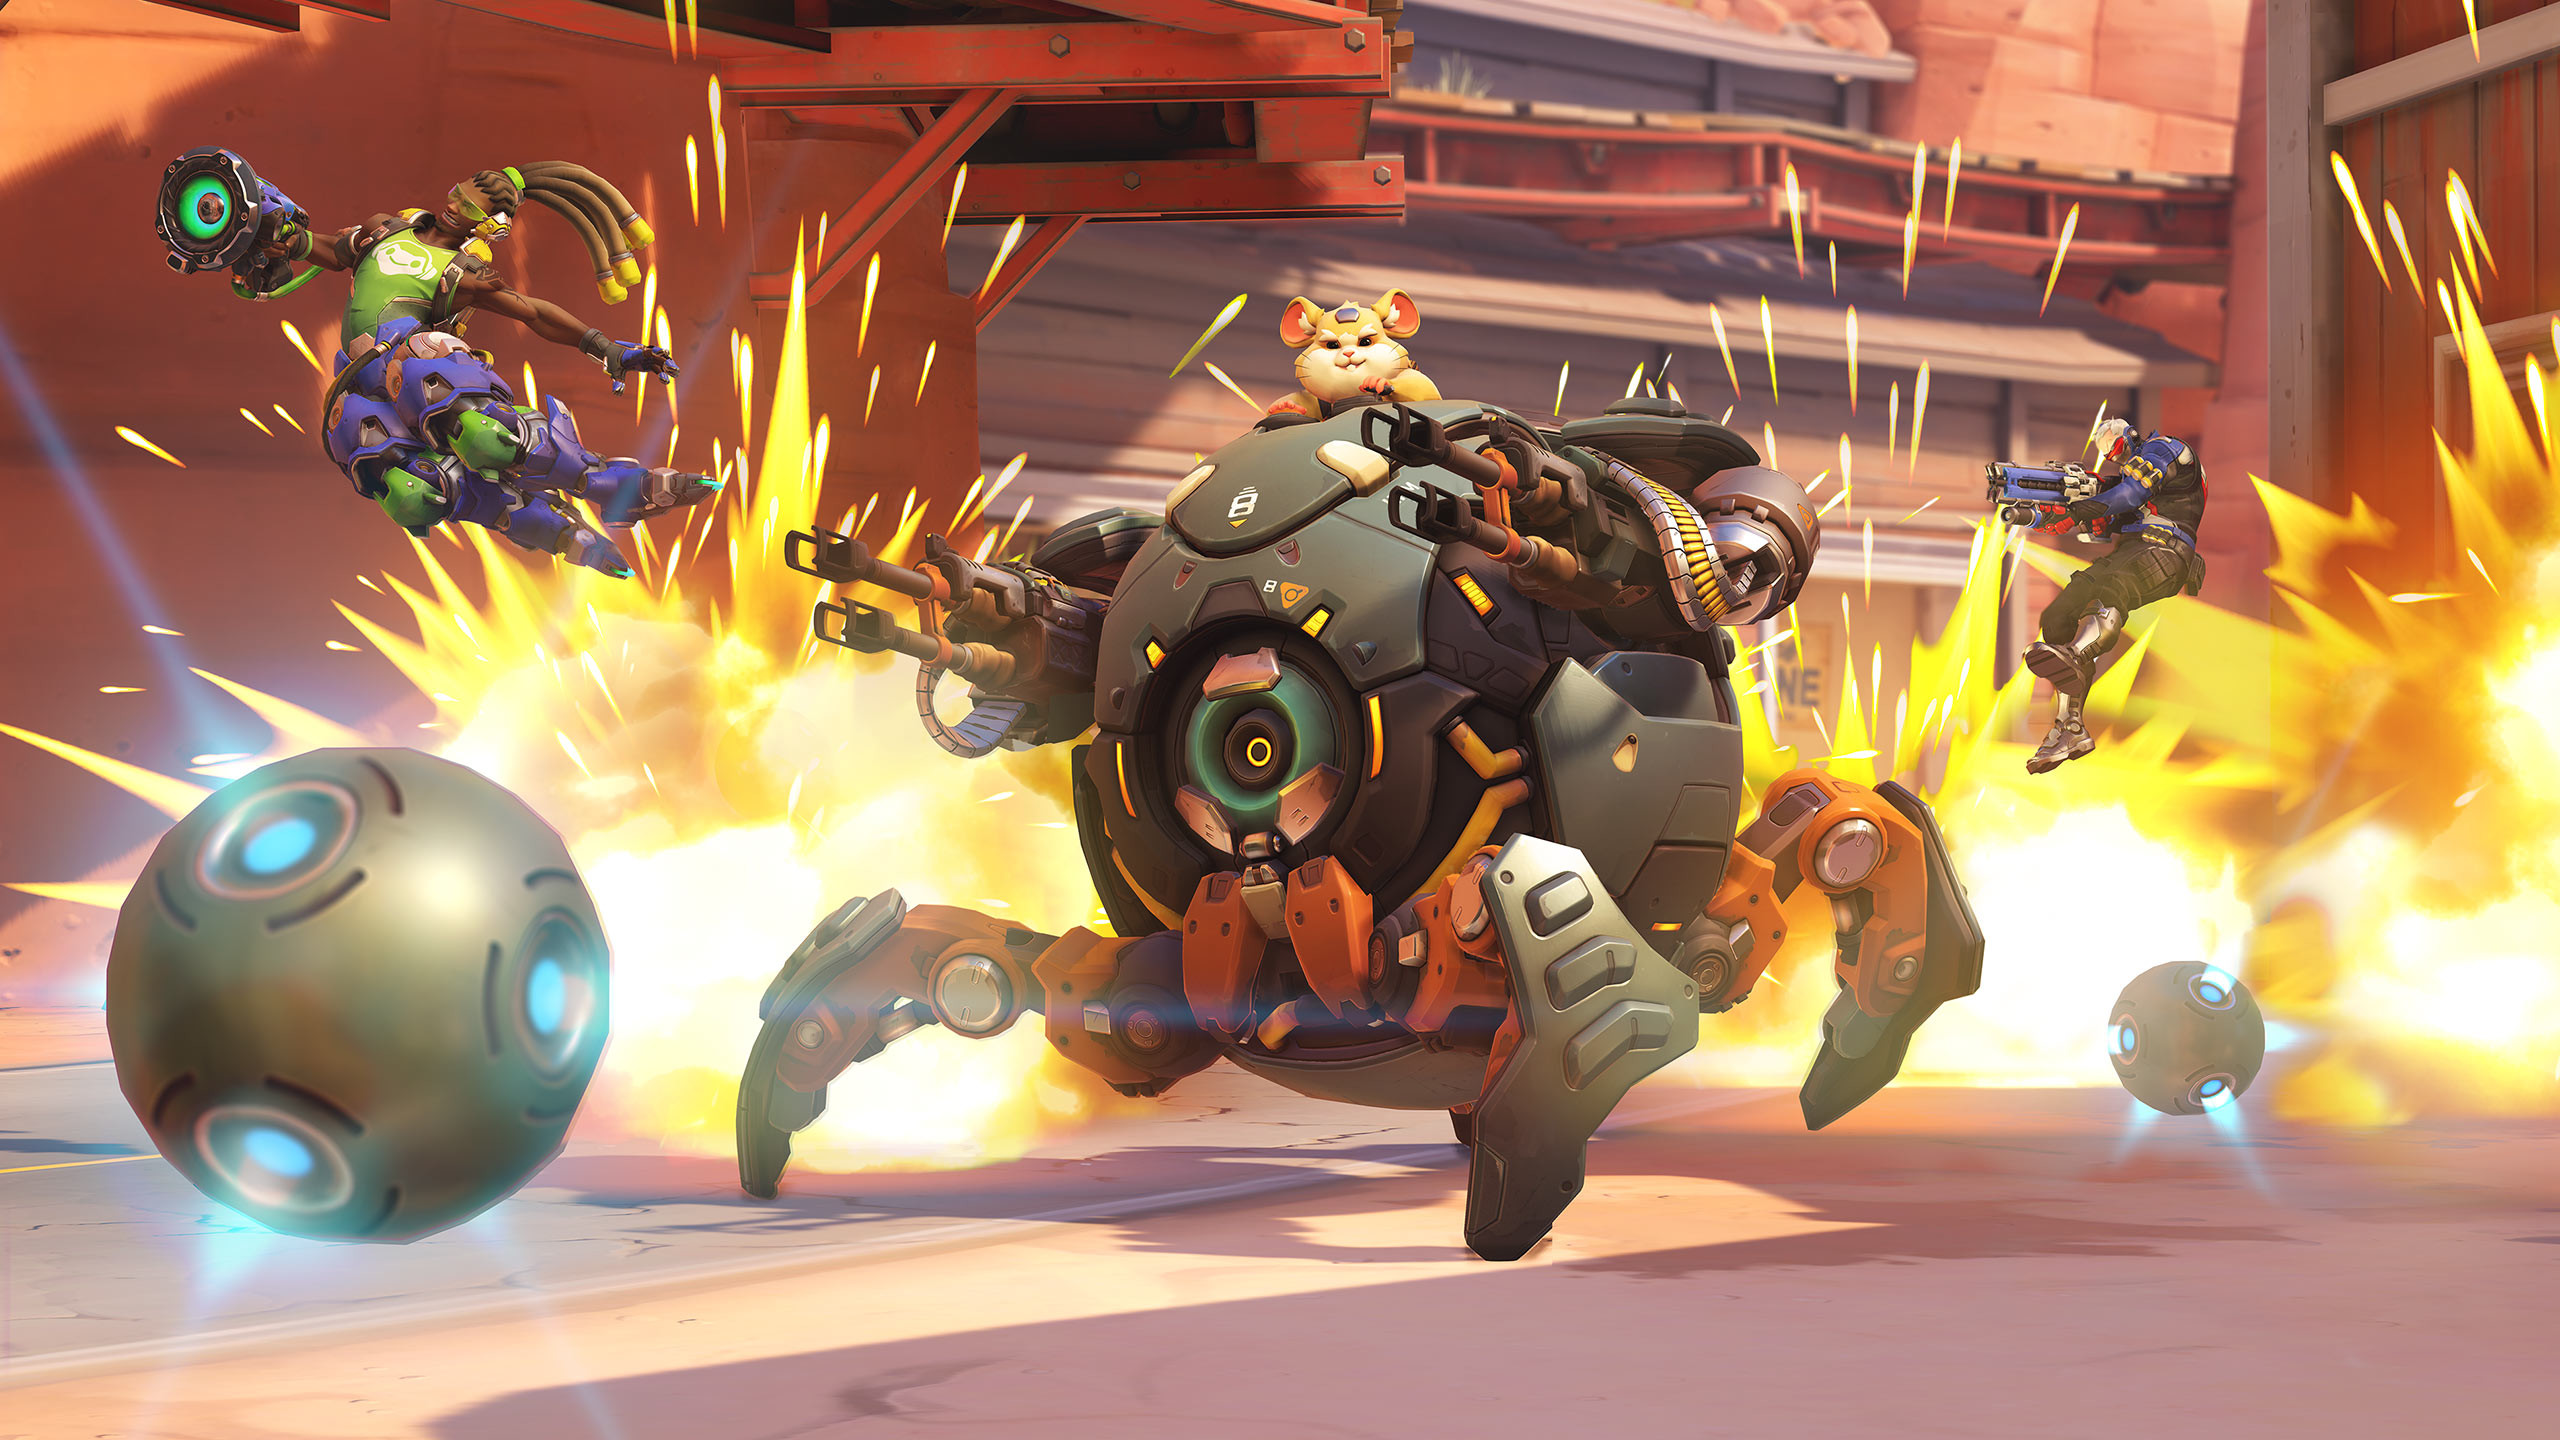 Weekend Pc Game Deals Overwatch Free Event And The Tail End Of A